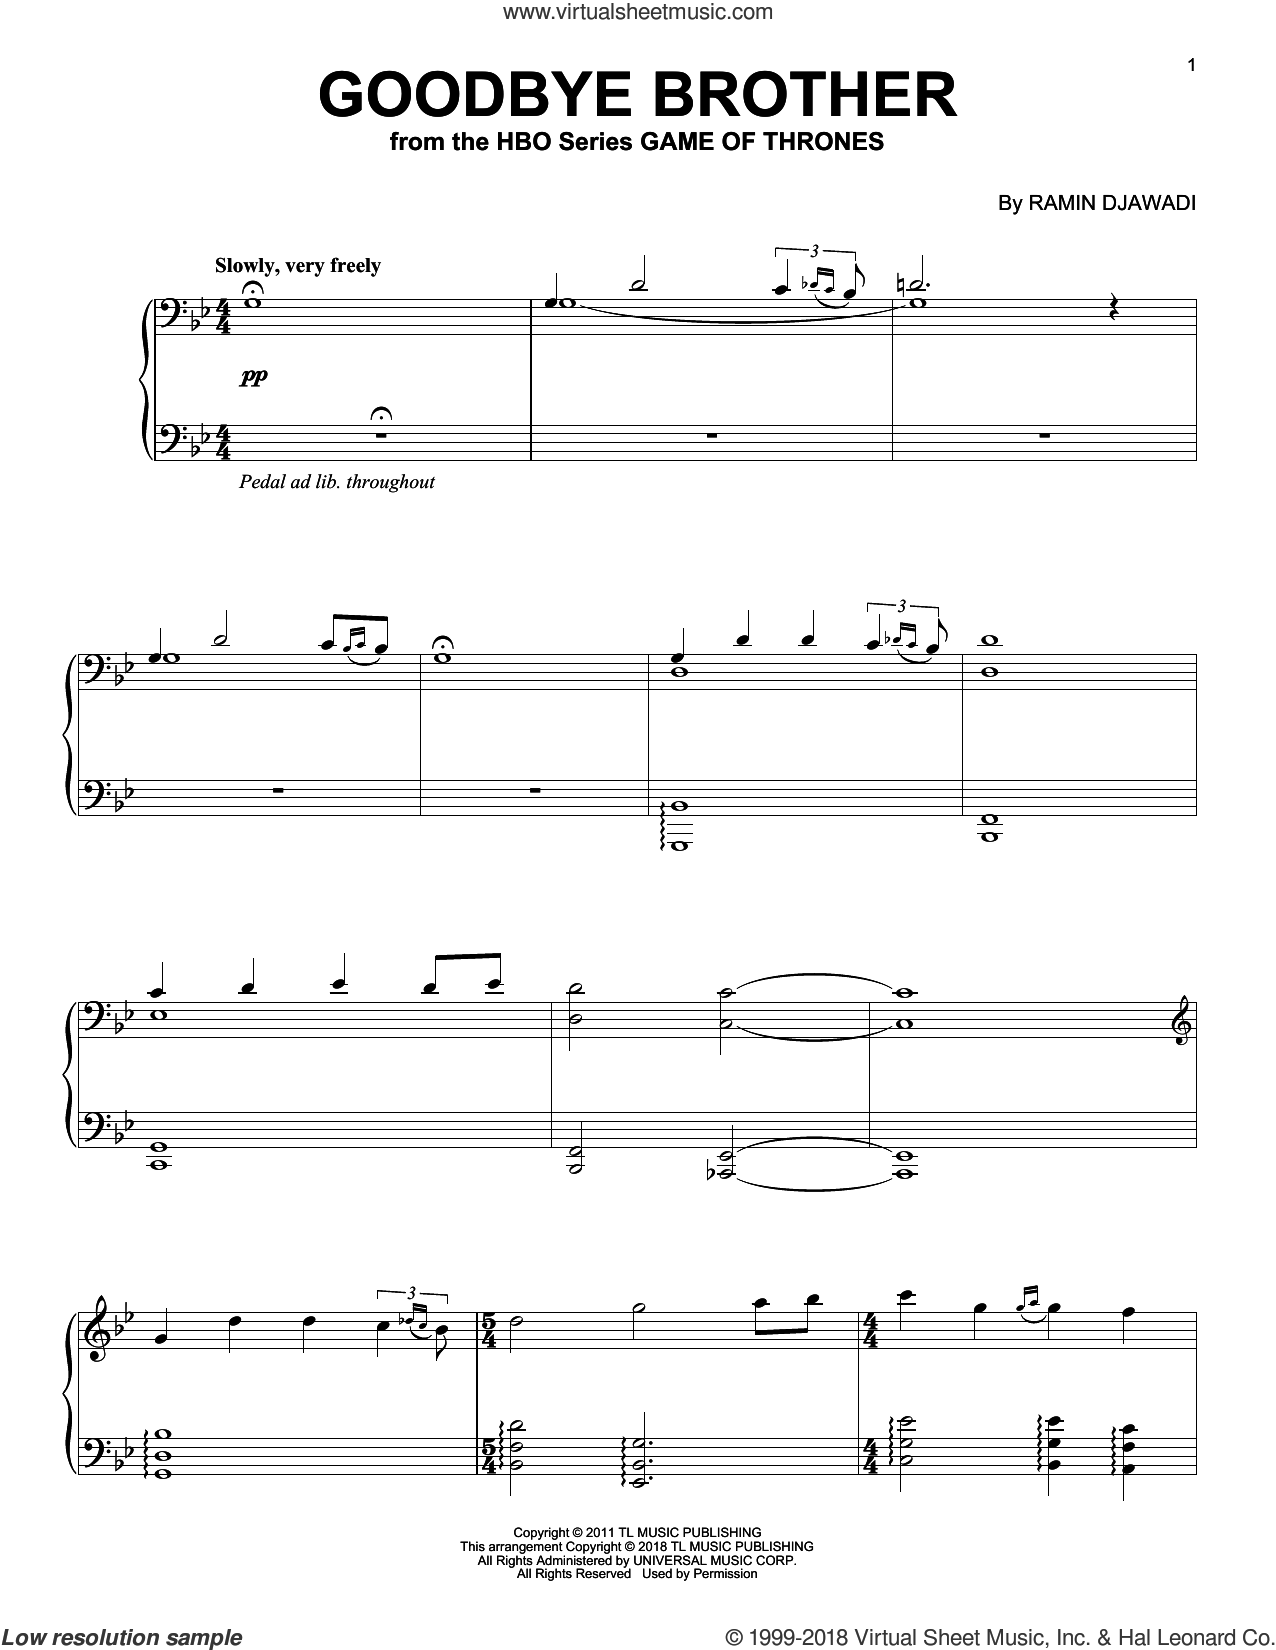 Goodbye Brother (from Game of Thrones) sheet music for piano solo by Ramin Djawadi, intermediate skill level